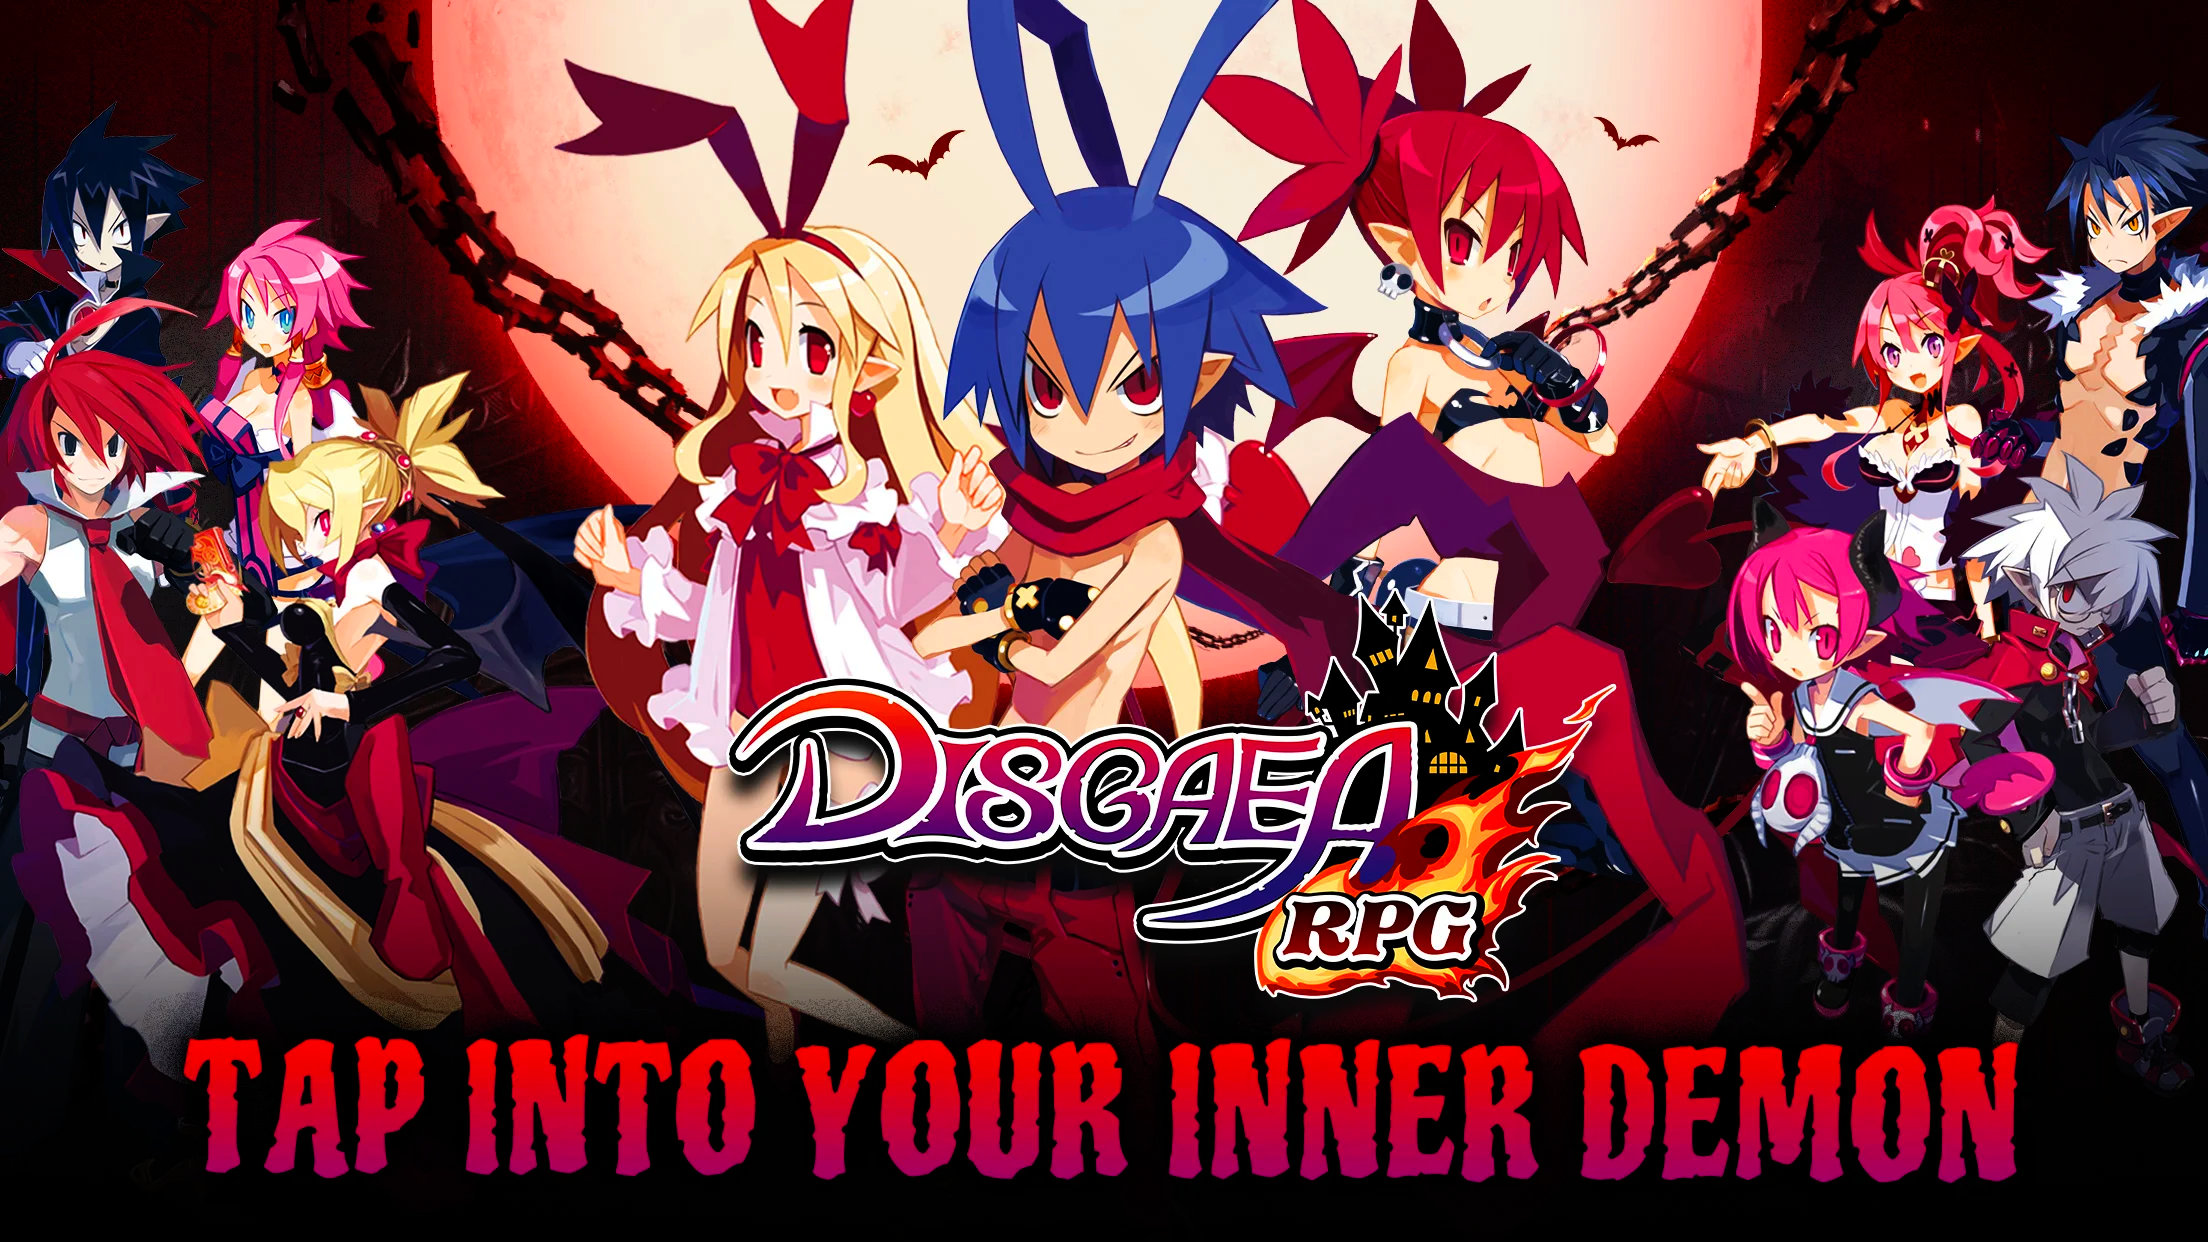 Disgaea RPG Cast Standing Together